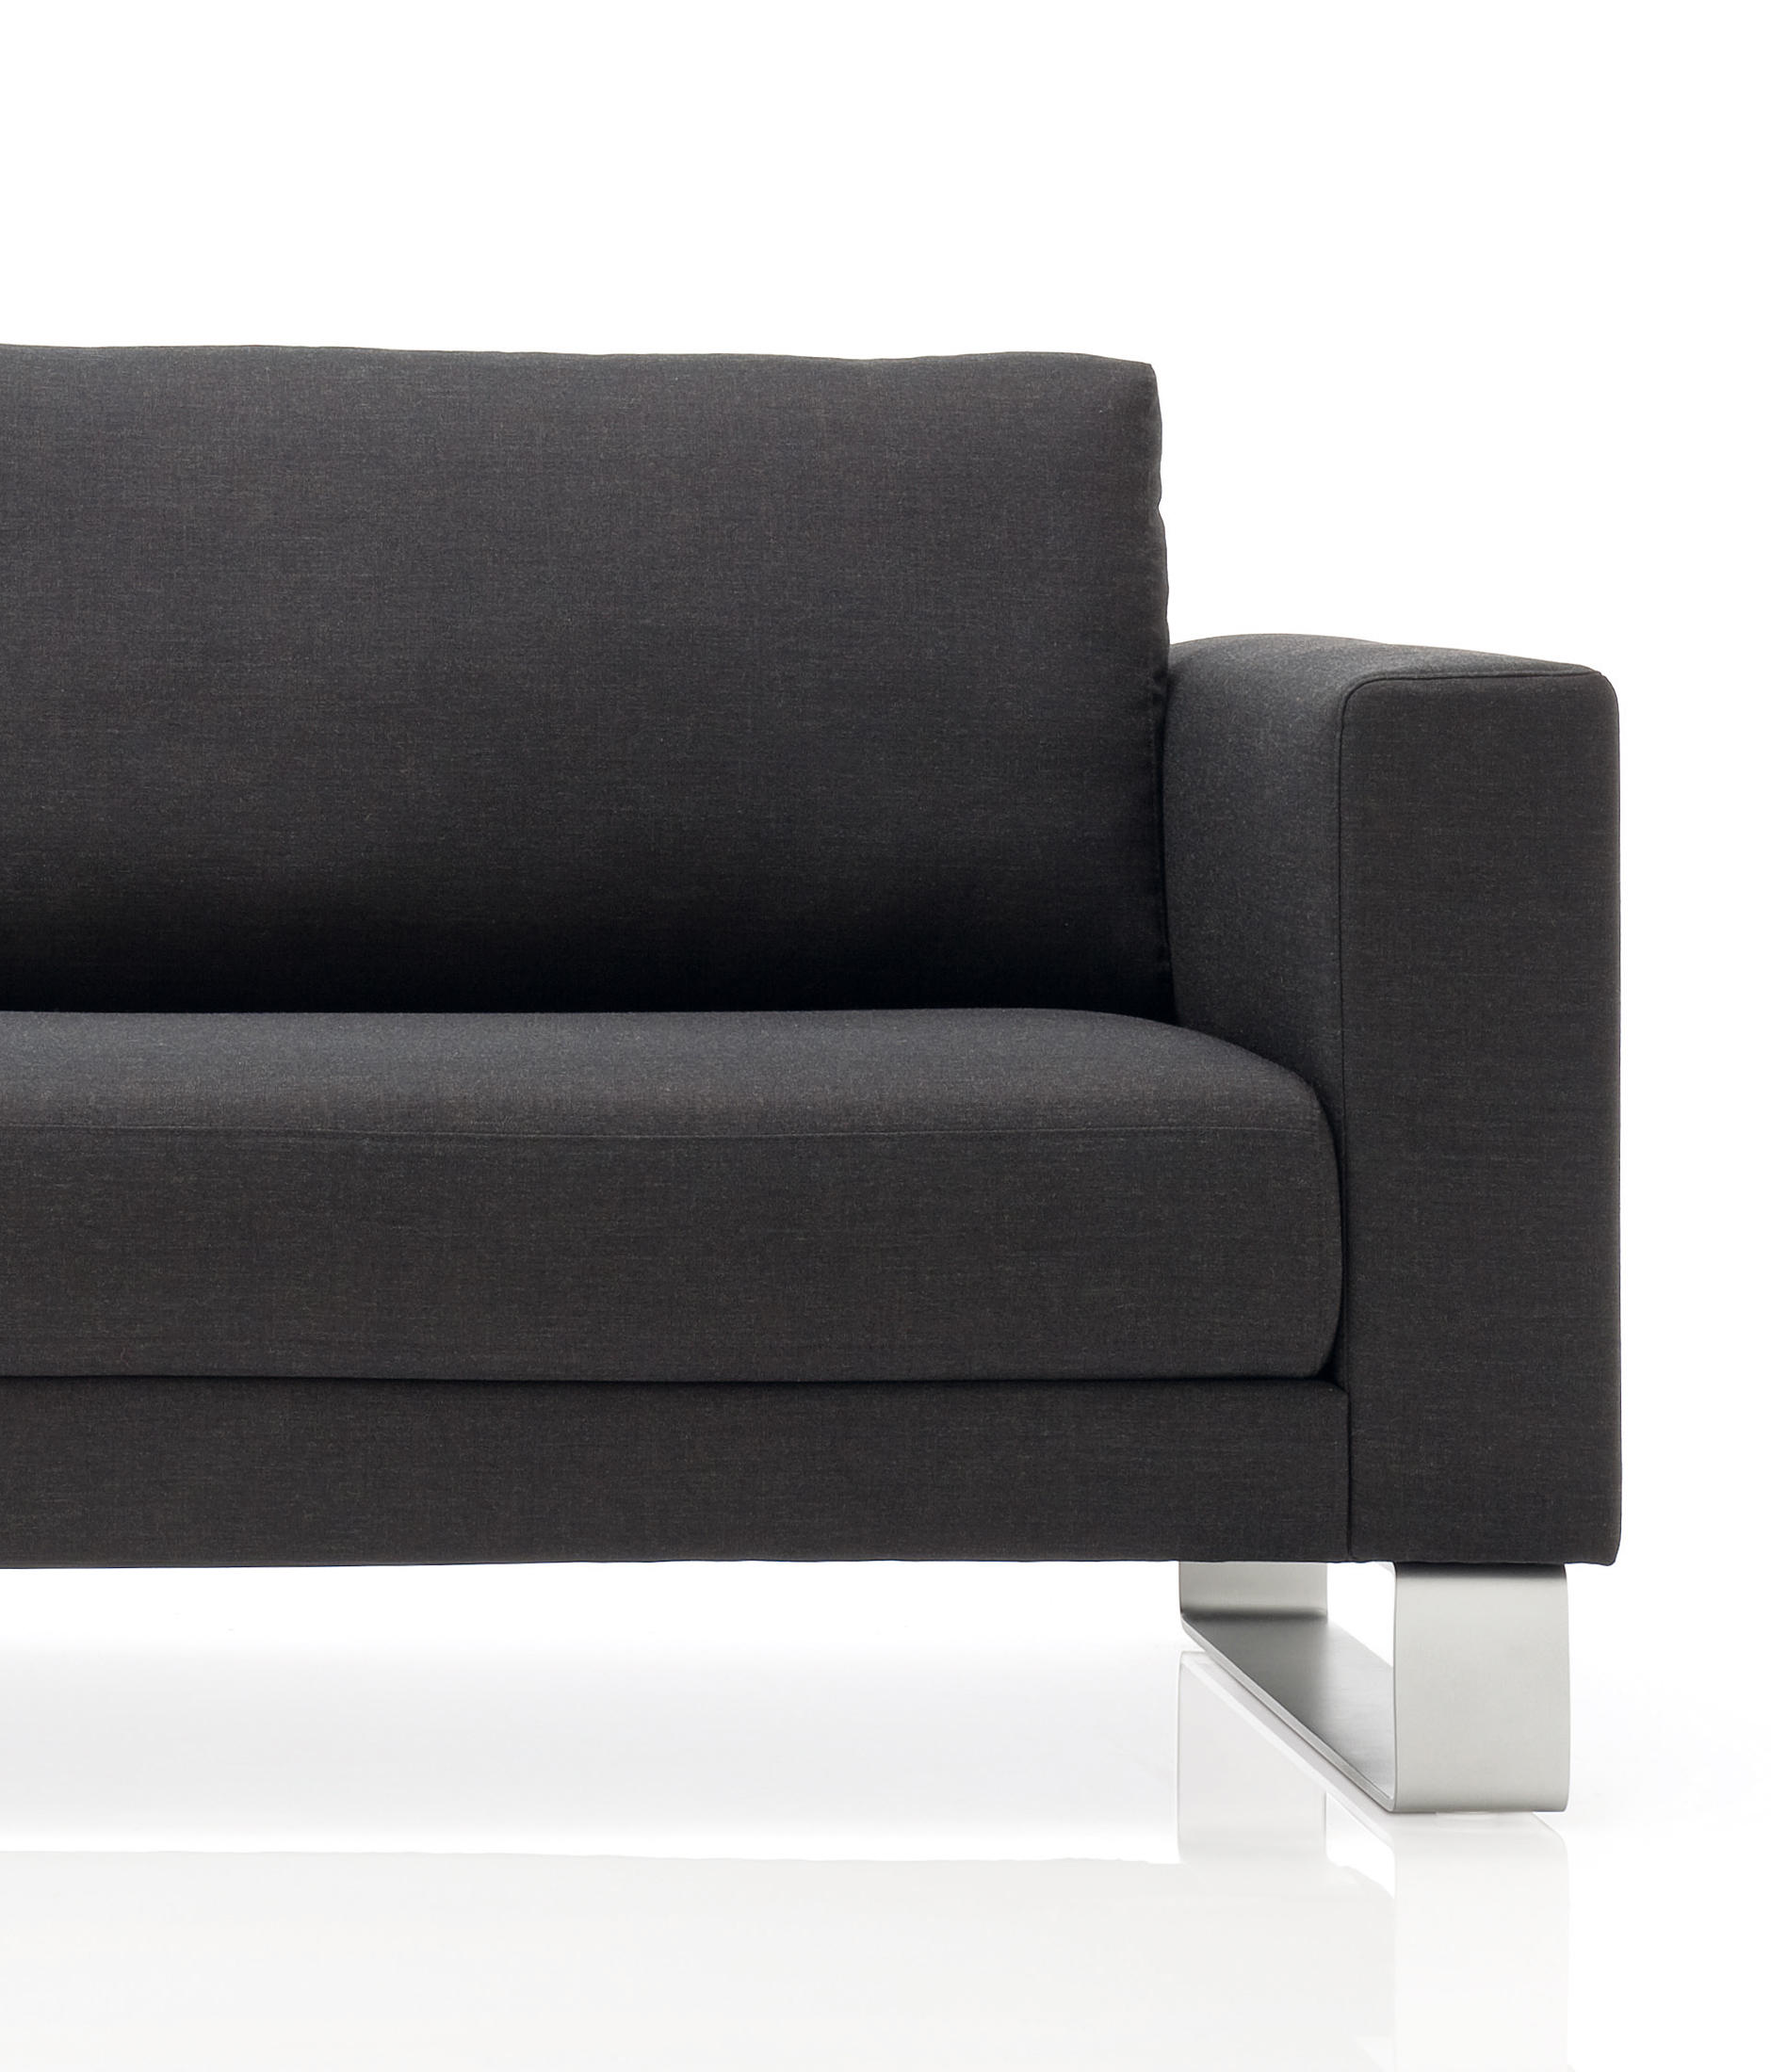 ROLF BENZ VIDA - Lounge sofas from Rolf Benz | Architonic